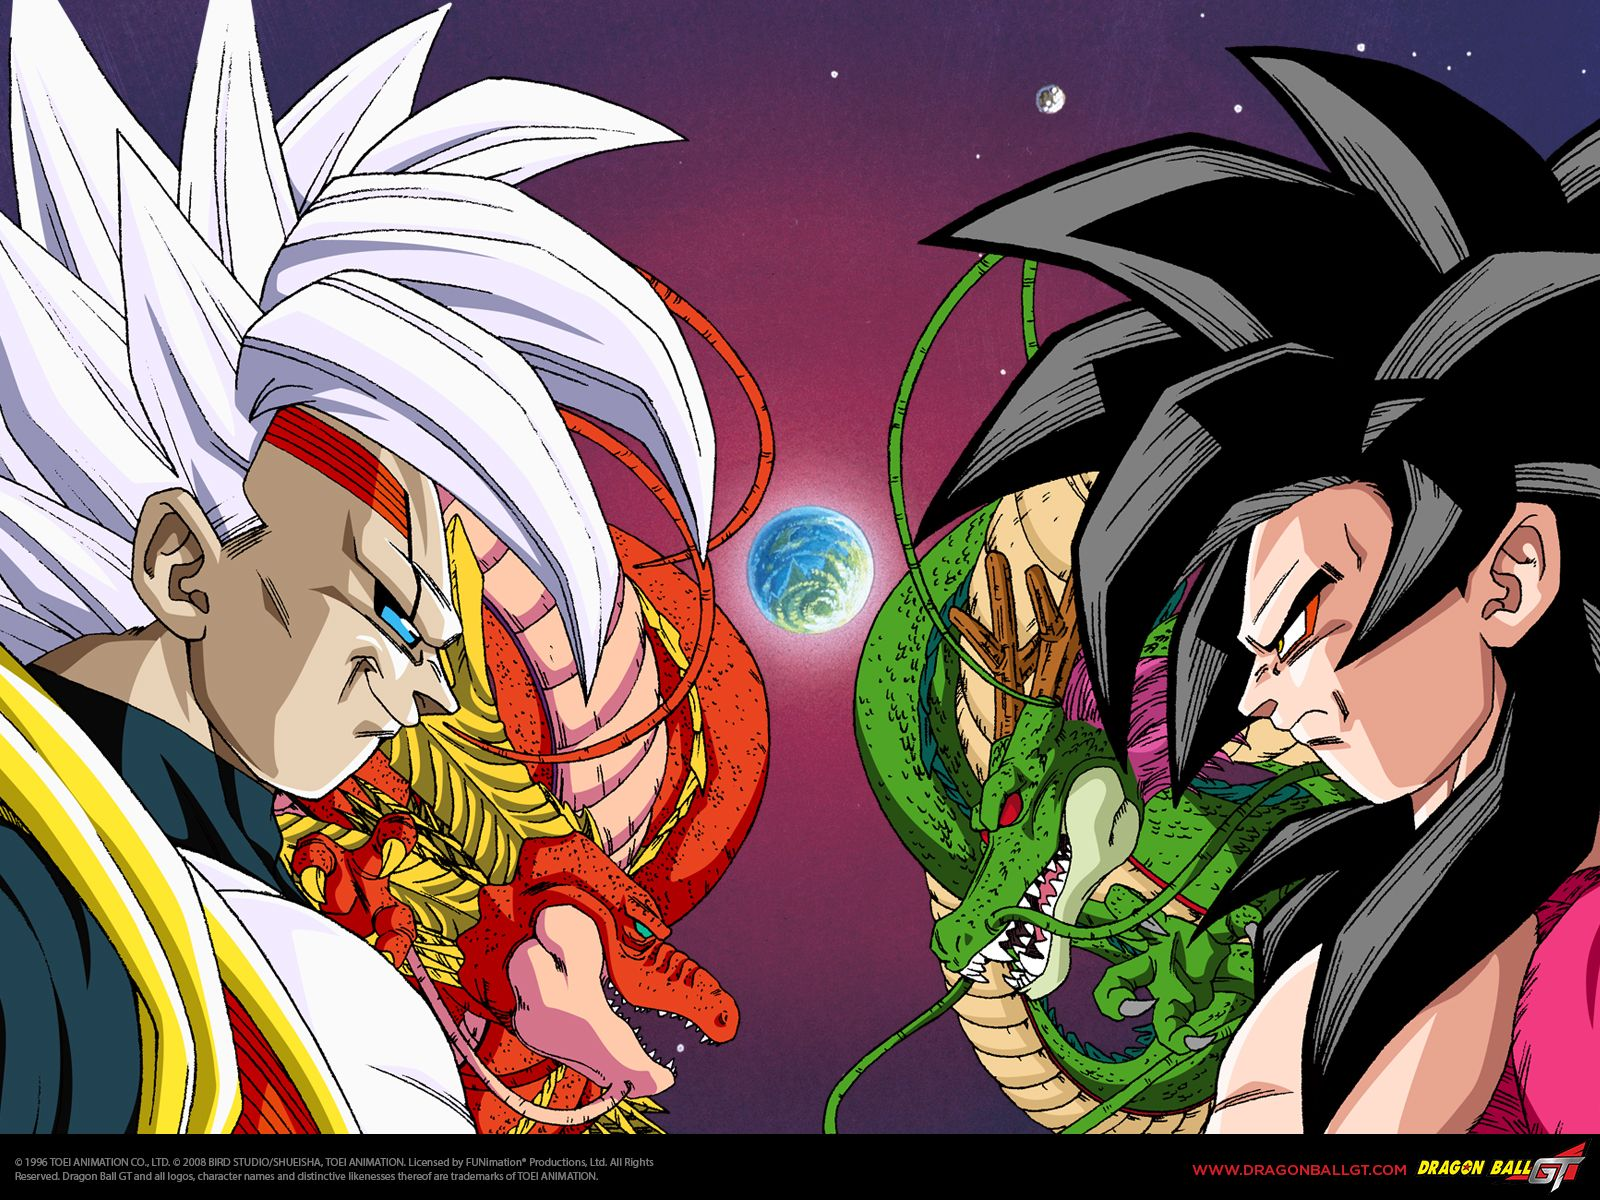 Dragon ball gt google search anime that i ever watched - Dragon ball gt goku wallpaper ...